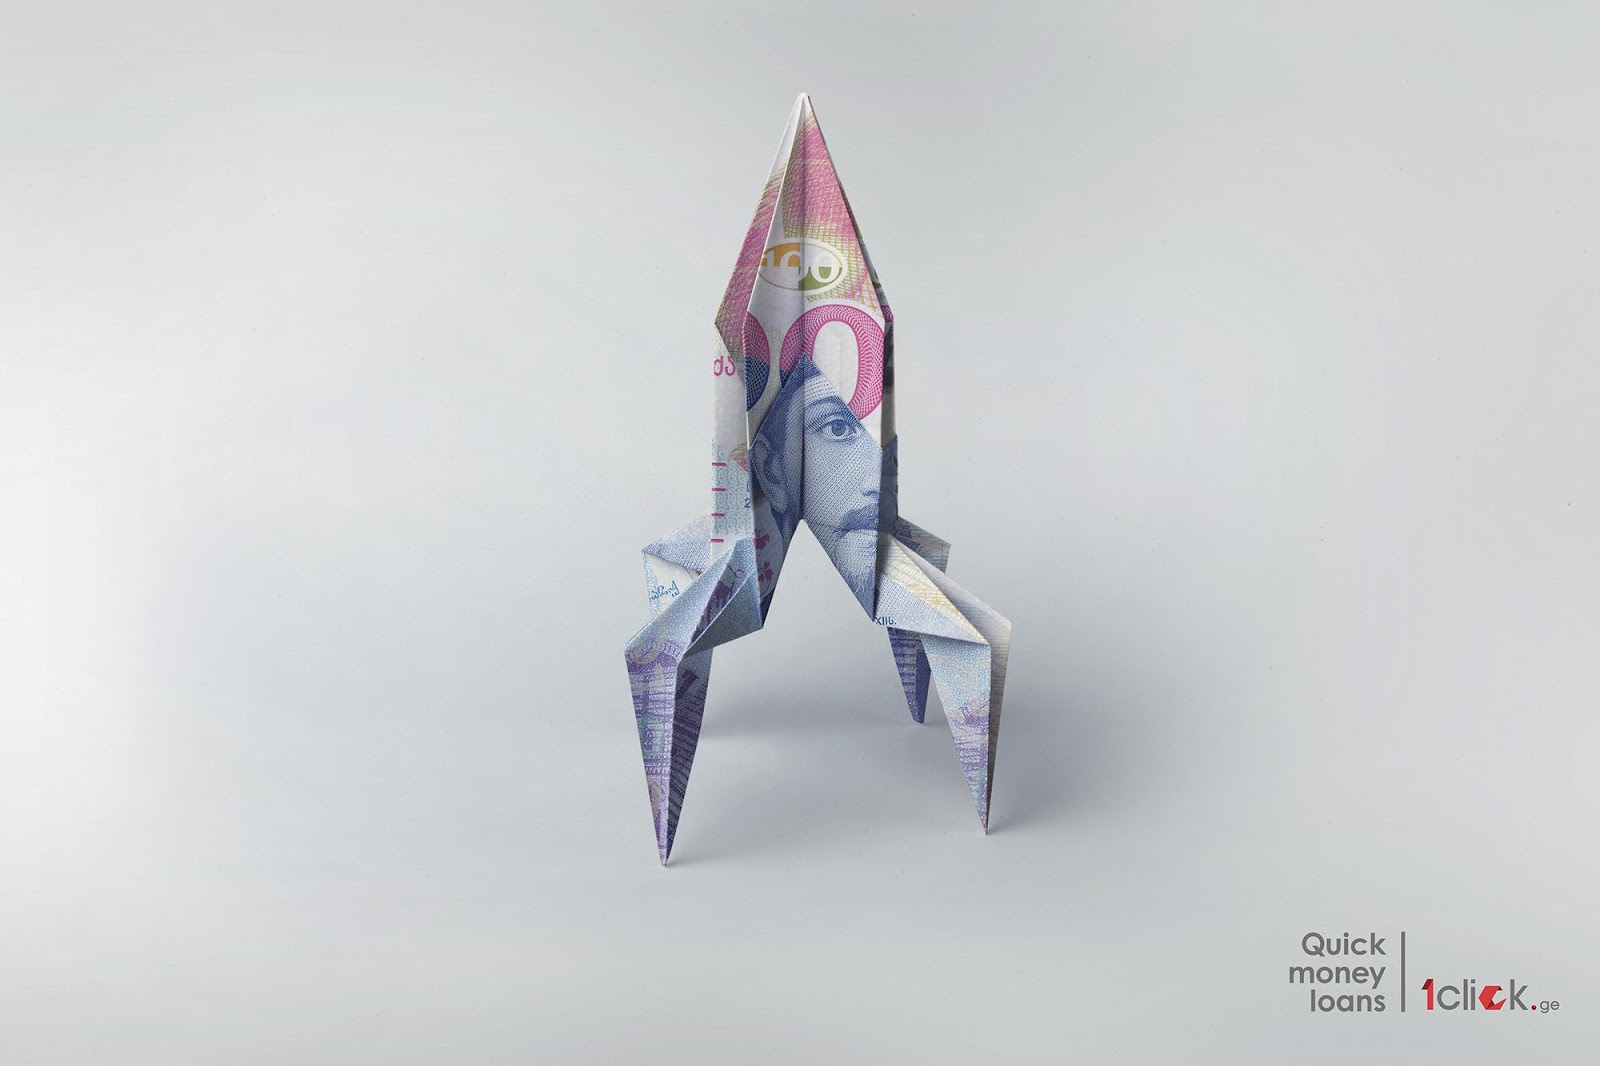 1Clickge Rocket Origami Print Advertisement